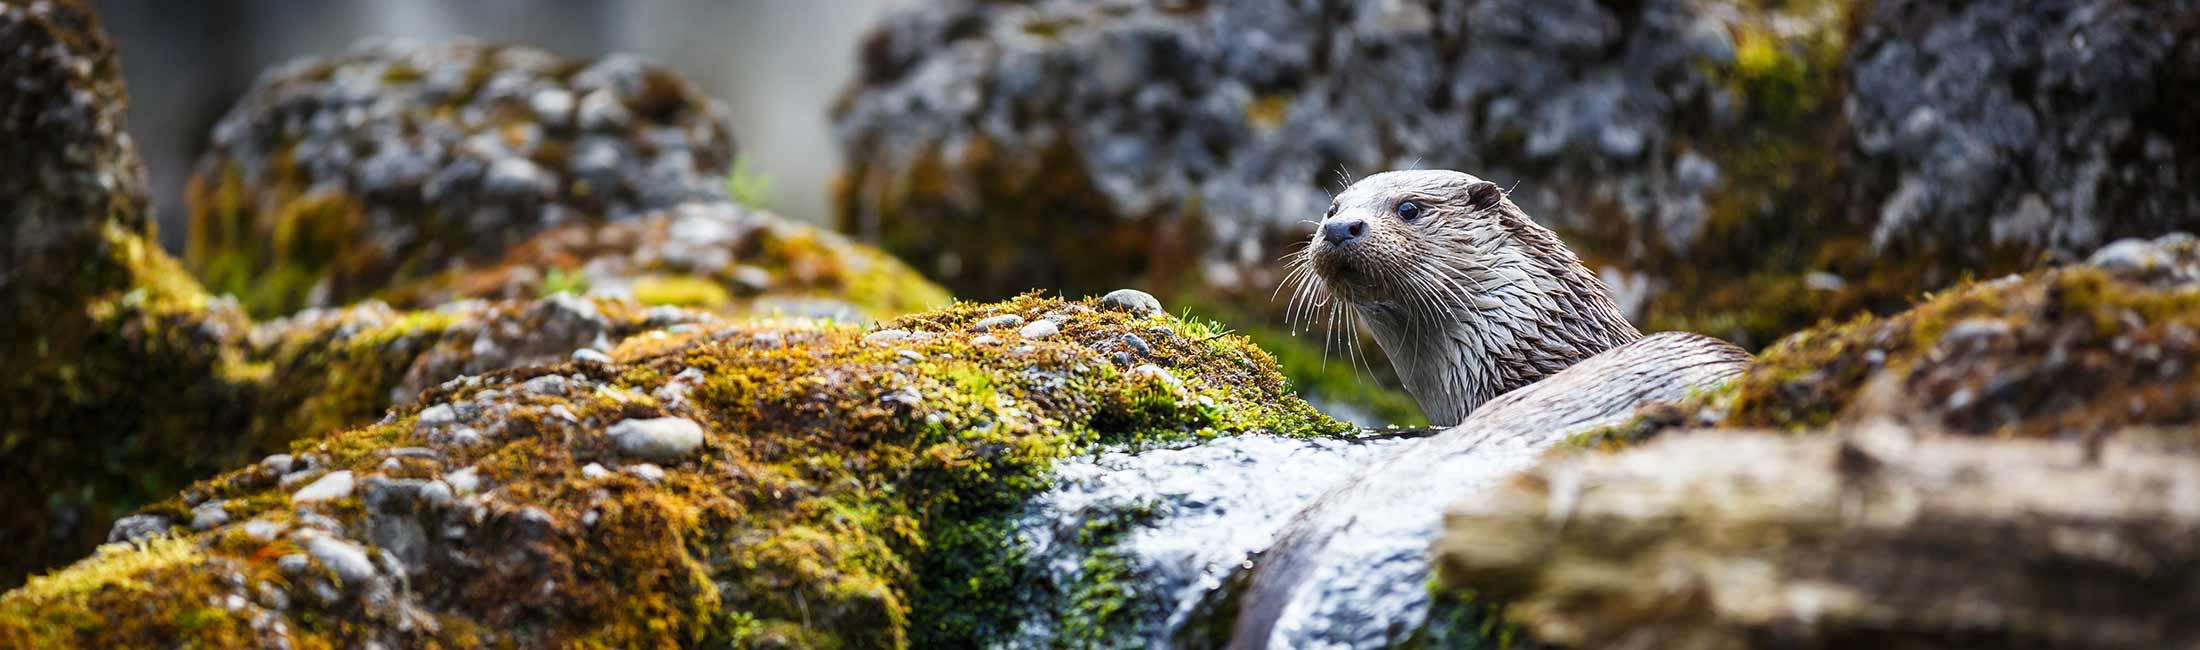 Otter in Missoula, Montana